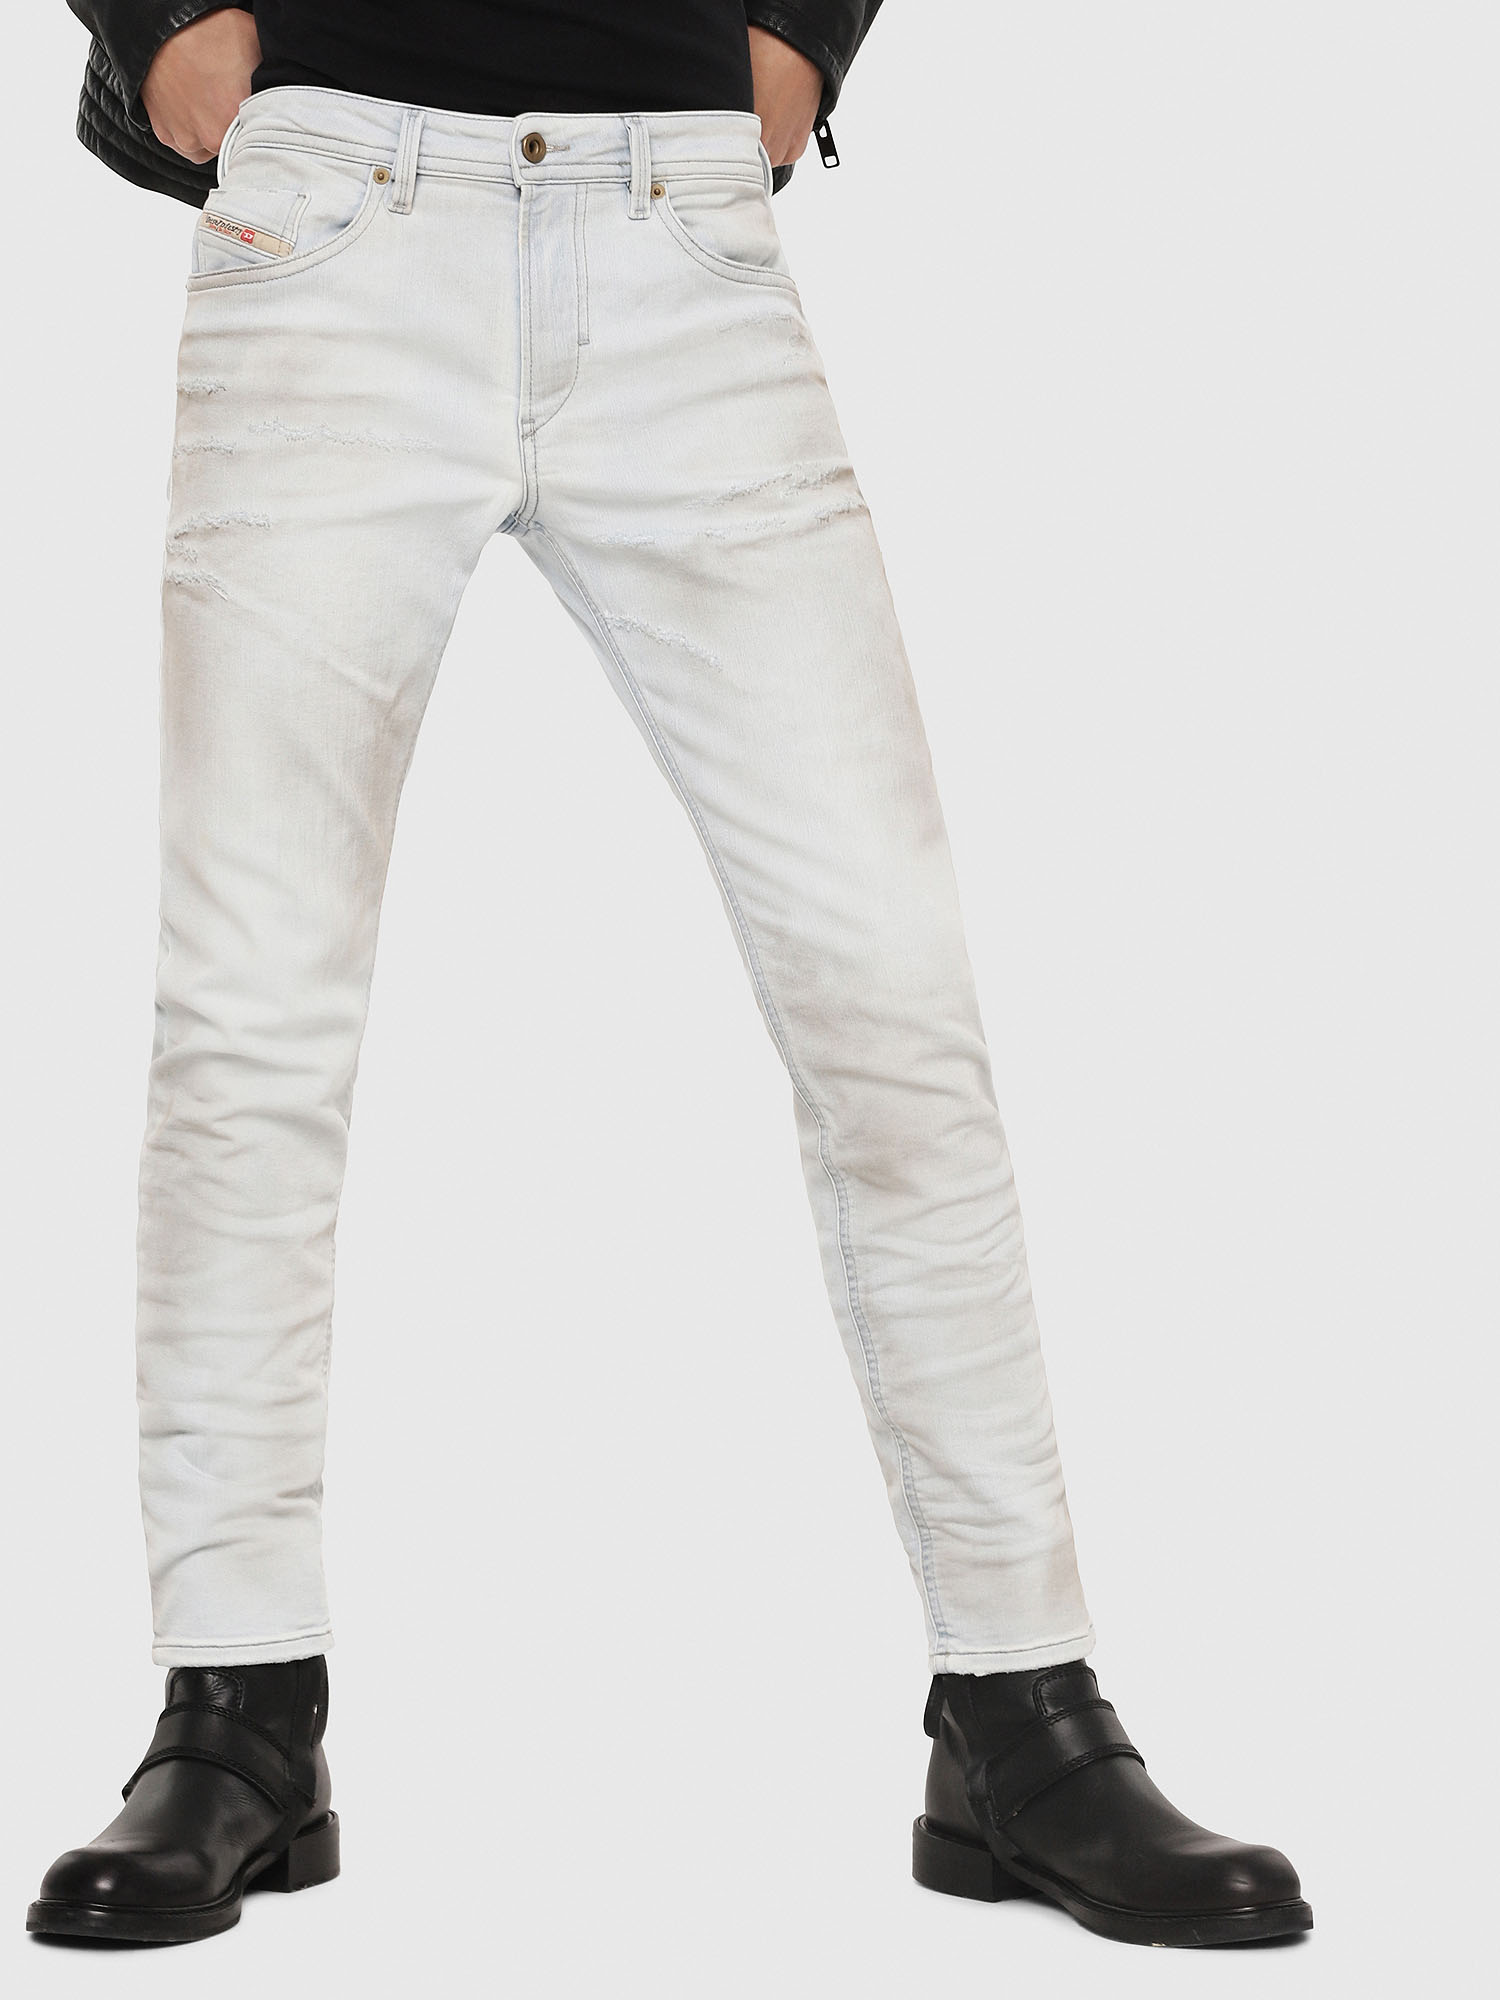 Diesel - Thommer JoggJeans 087AA,  - Jeans - Image 1